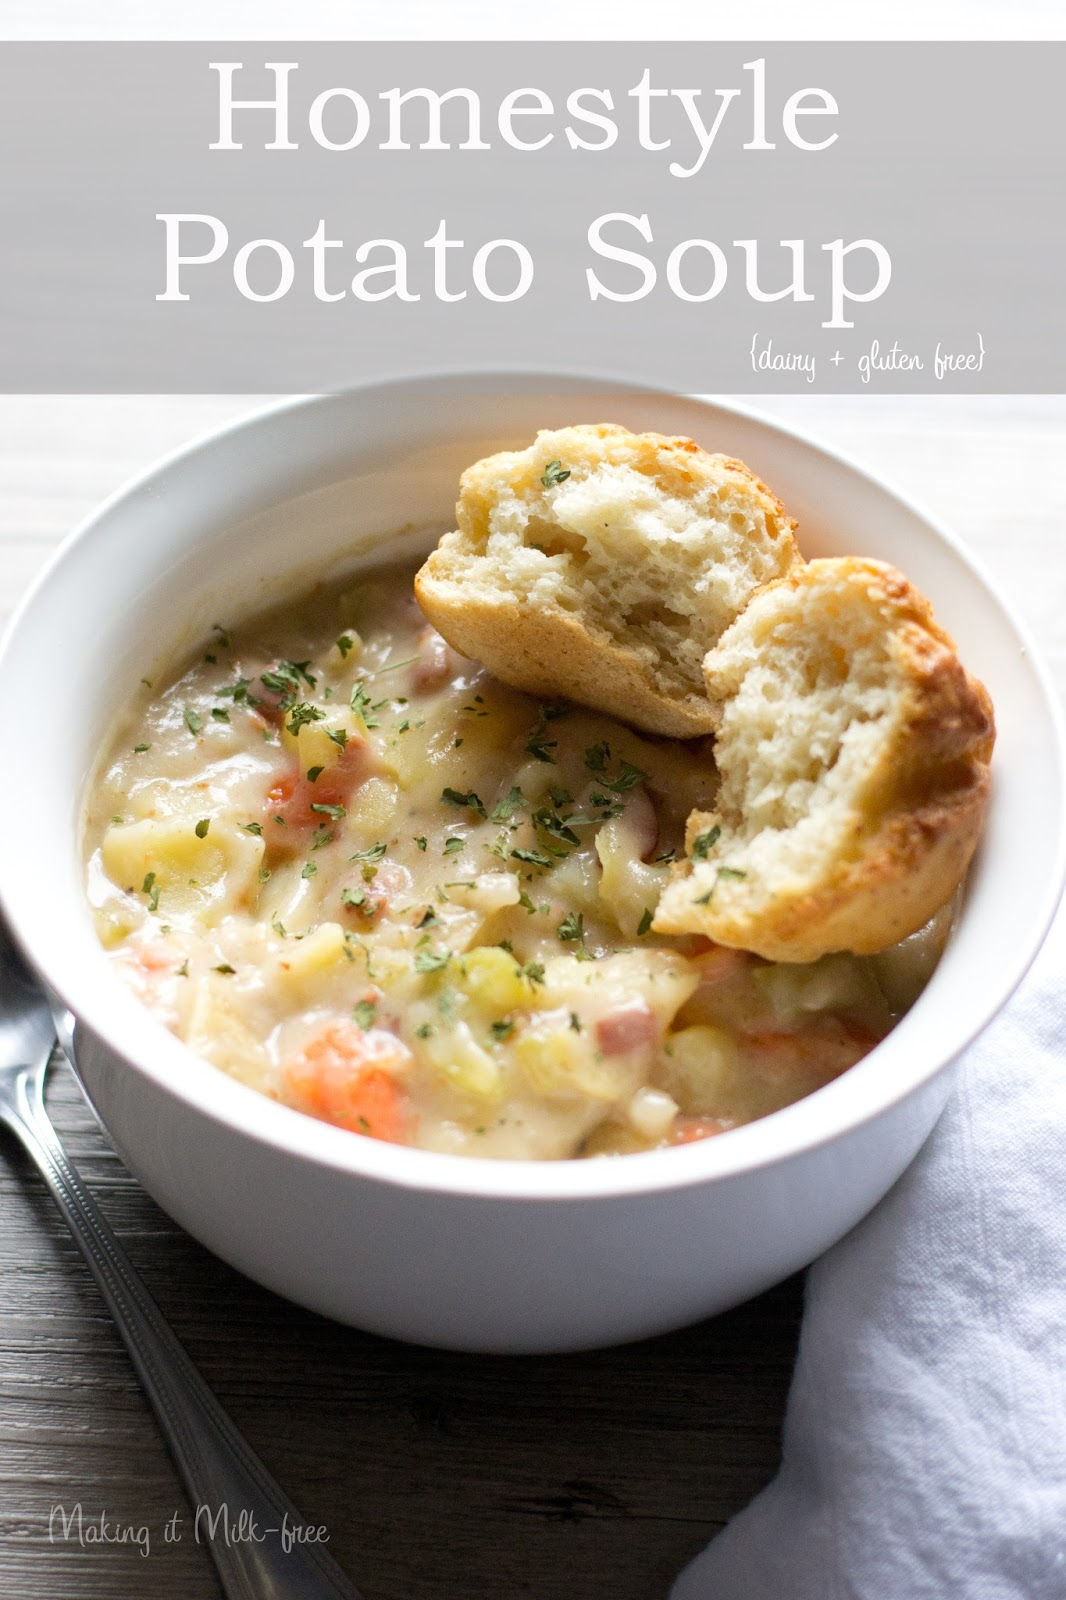 Homestyle Potato Soup {dairy + gluten free} by Making it Milk-free